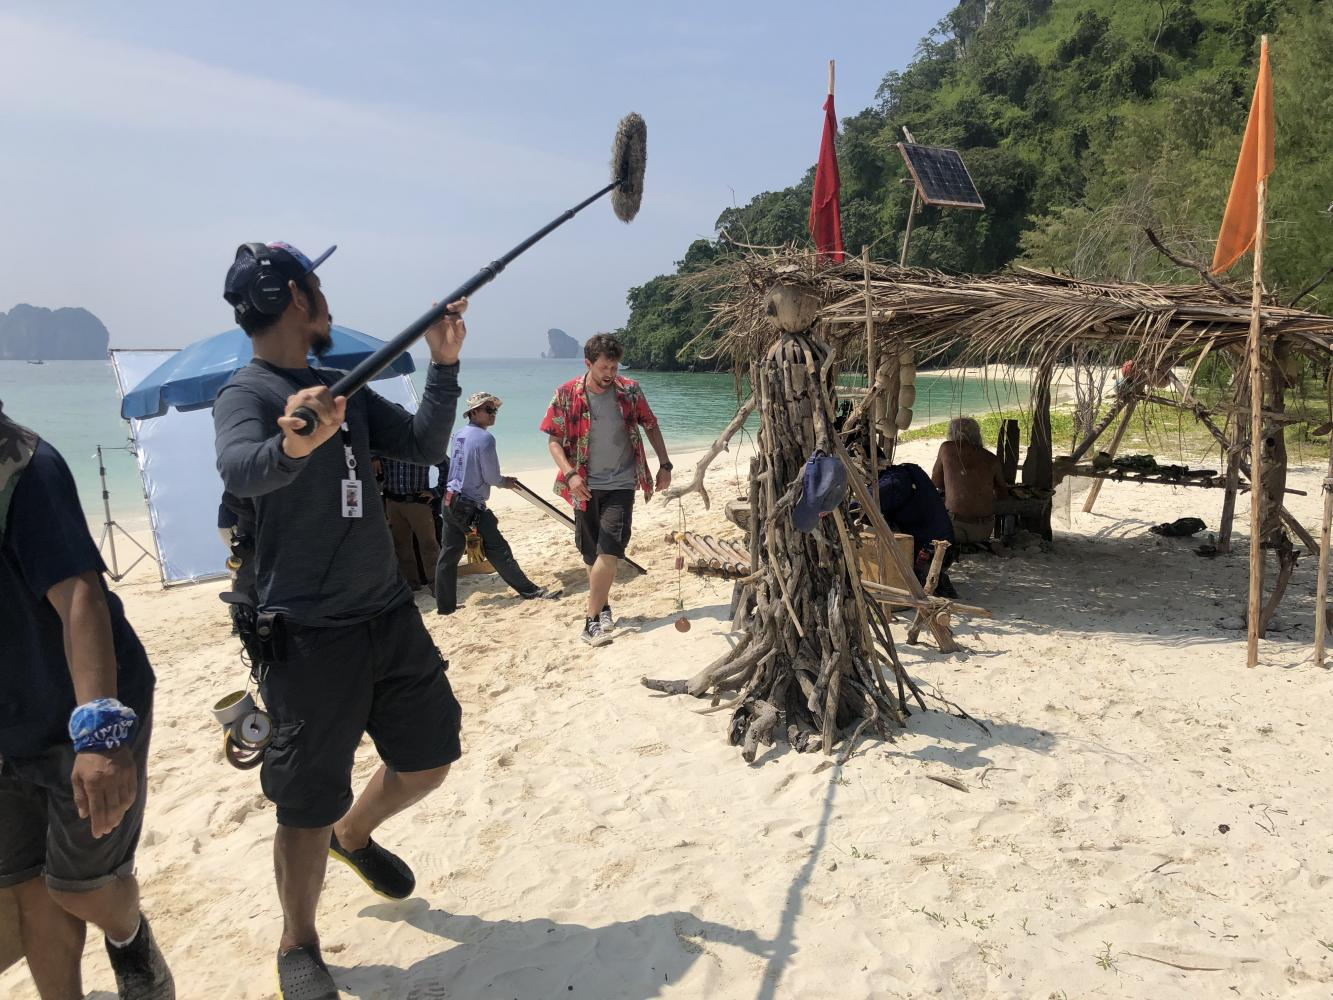 International film crews in Thailand could generate 3.2-3.5 billion in revenue, according to the Tourism Department's latest target, after the introduction of an additional 5% incentive to lure more big productions to the country.